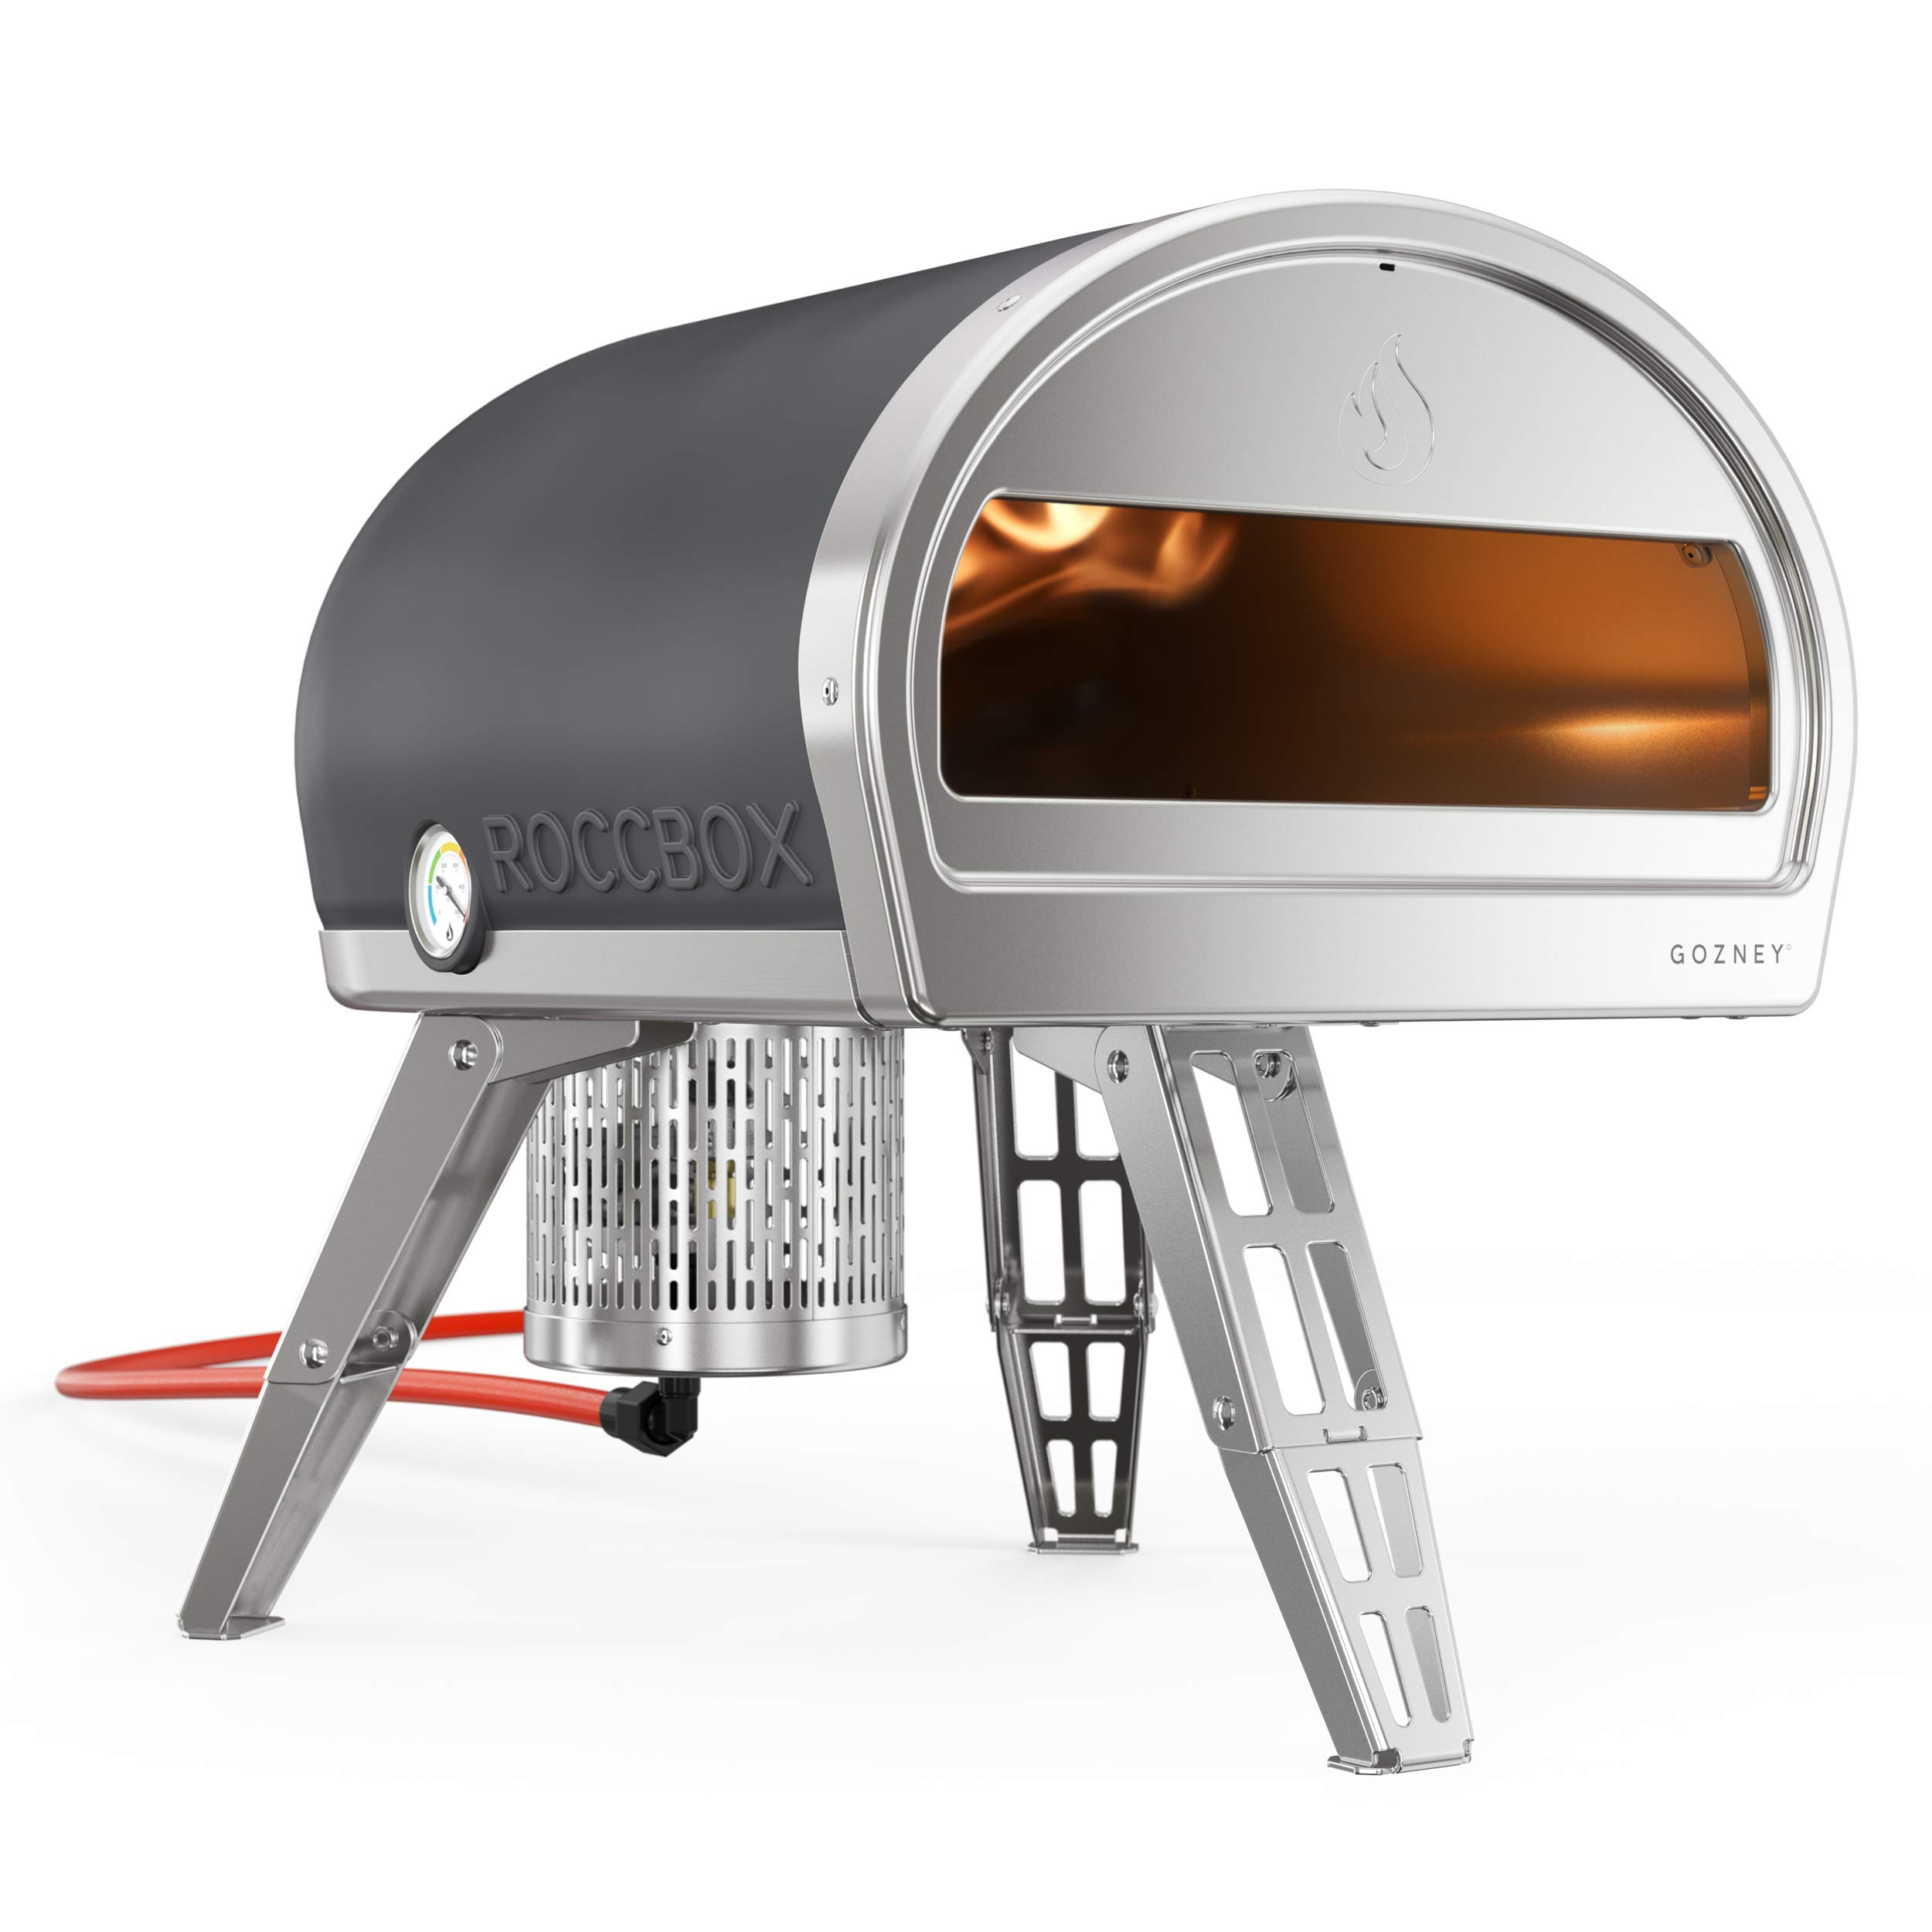 ROCCBOX Portable Outdoor Pizza Oven - Gas or Wood Fired, Dual-Fuel, Fire & Stone Outdoor Pizza Oven by ROCCBOX